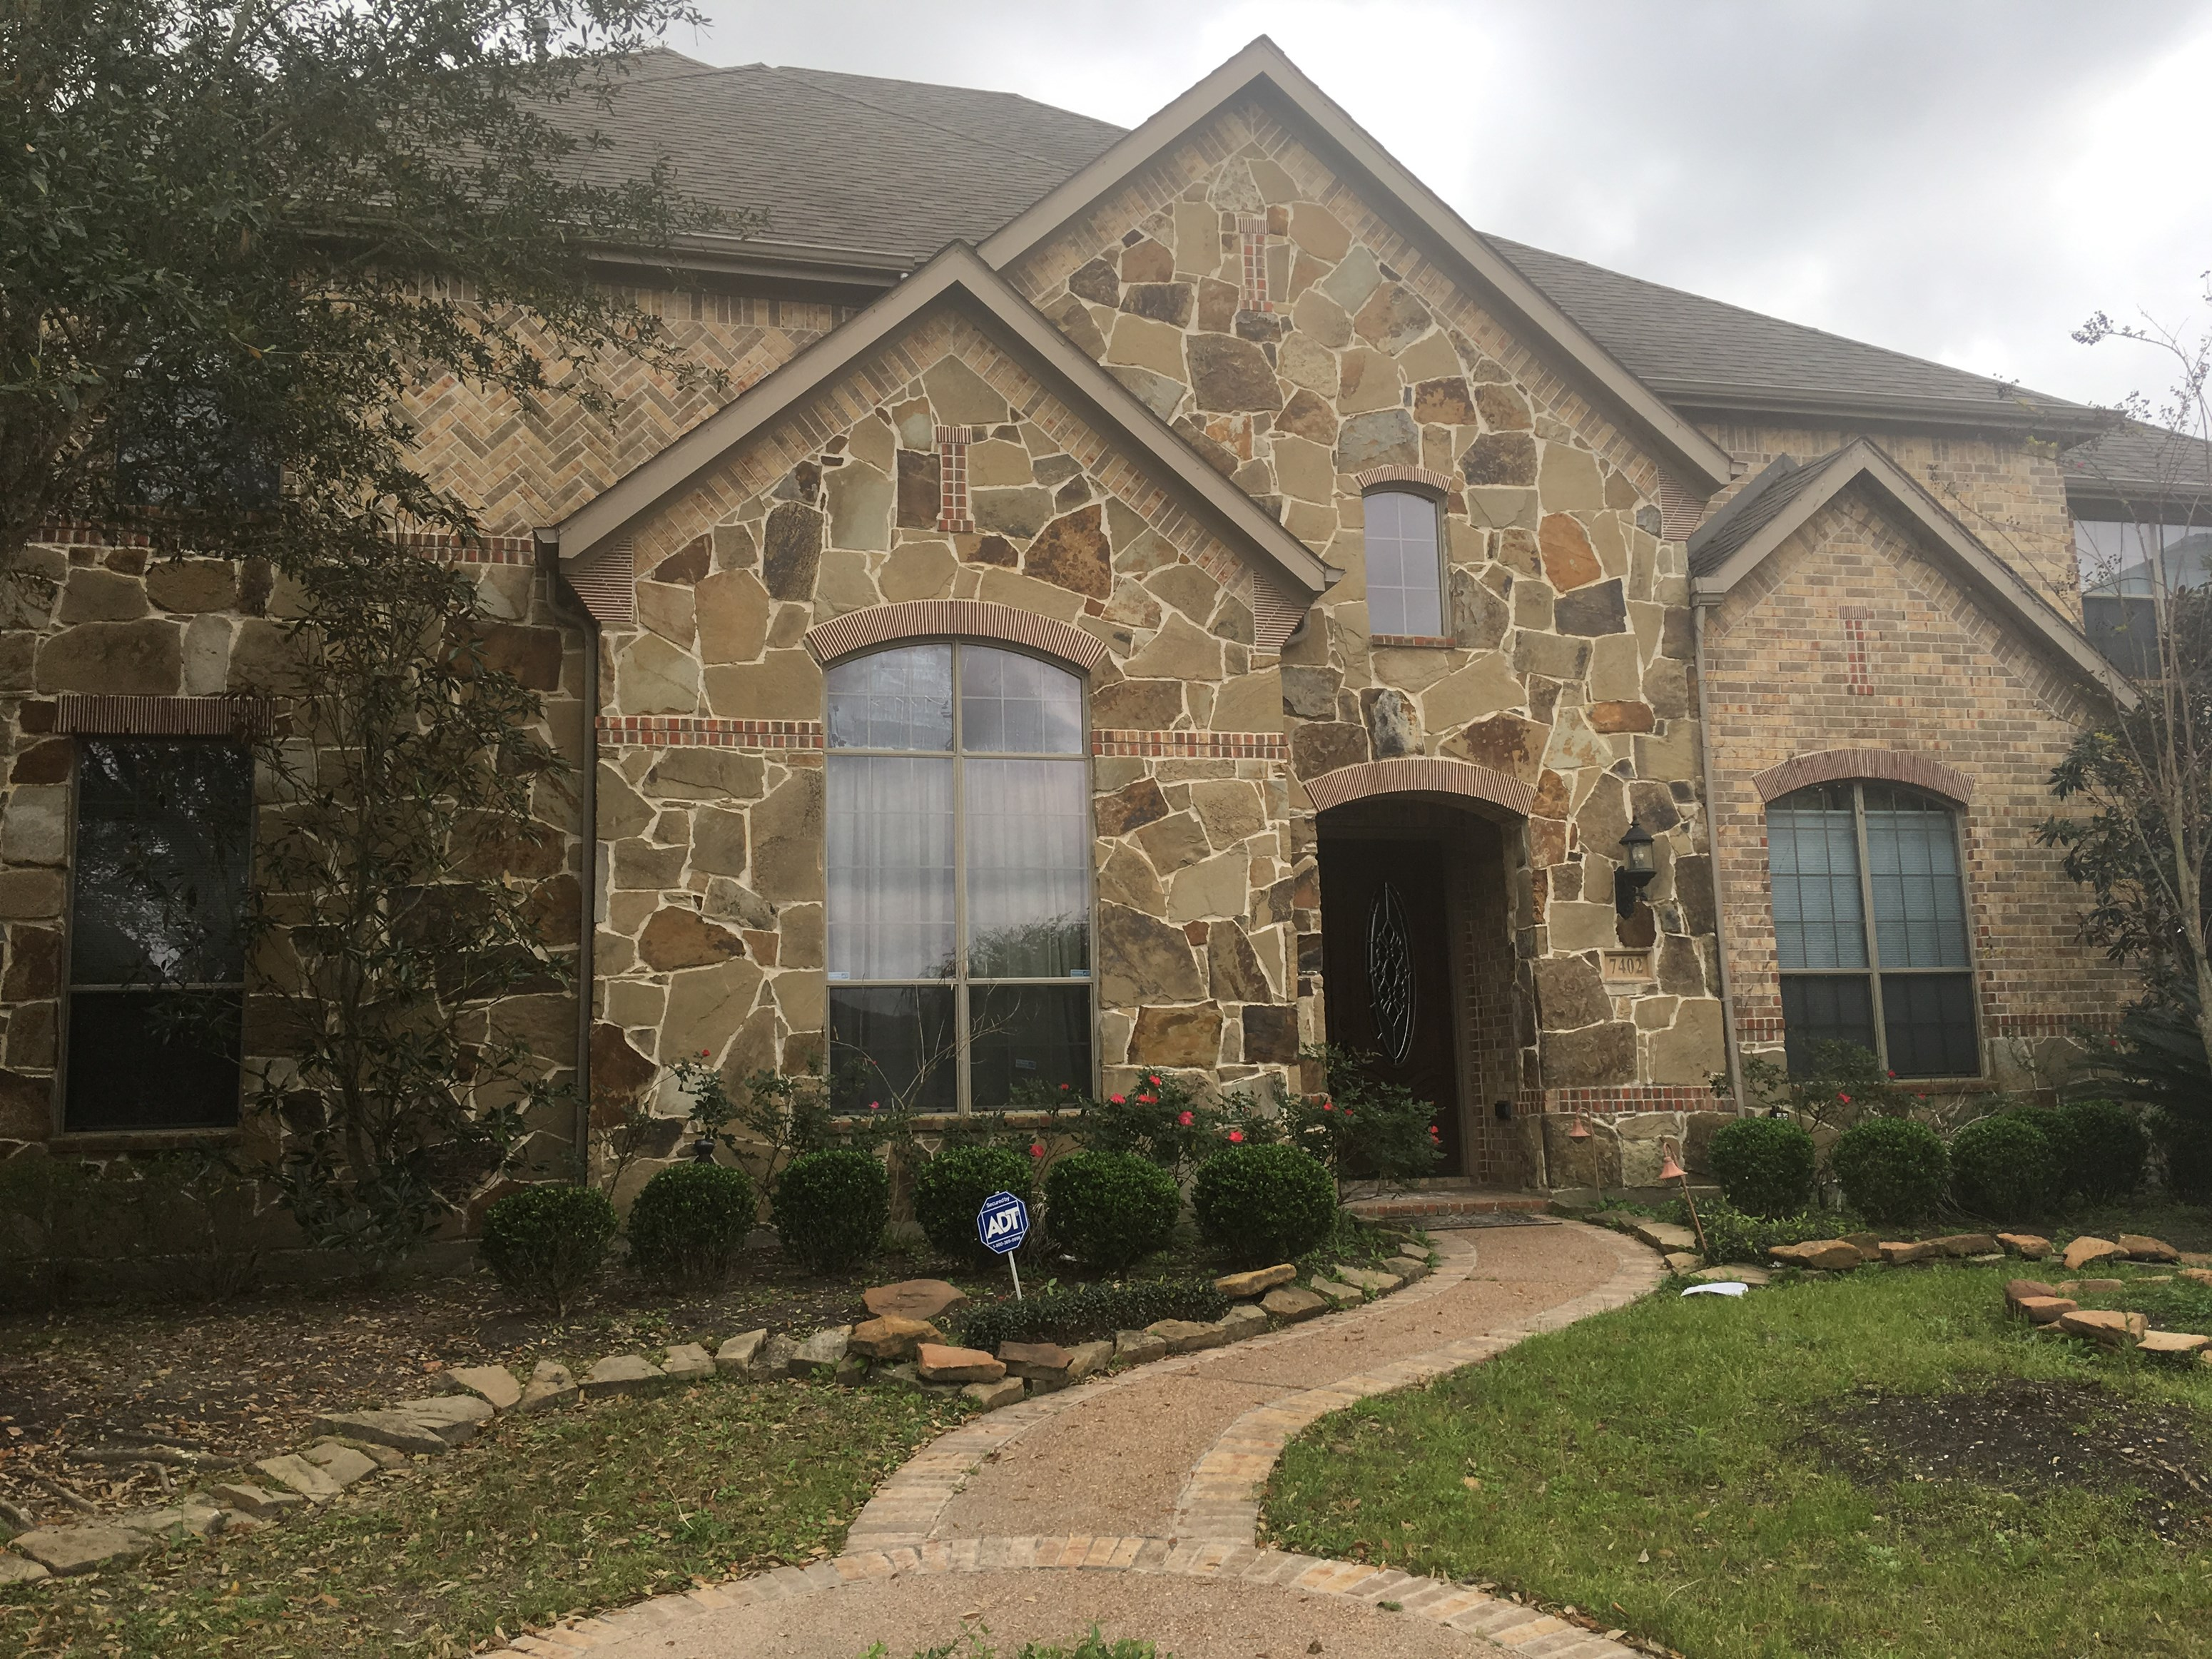 house rent houston apartments flats commercial space sqft house available  rent telfair sugar land. 3 Bedroom Houses For Rent Houston Tx Houston Apartments Rent